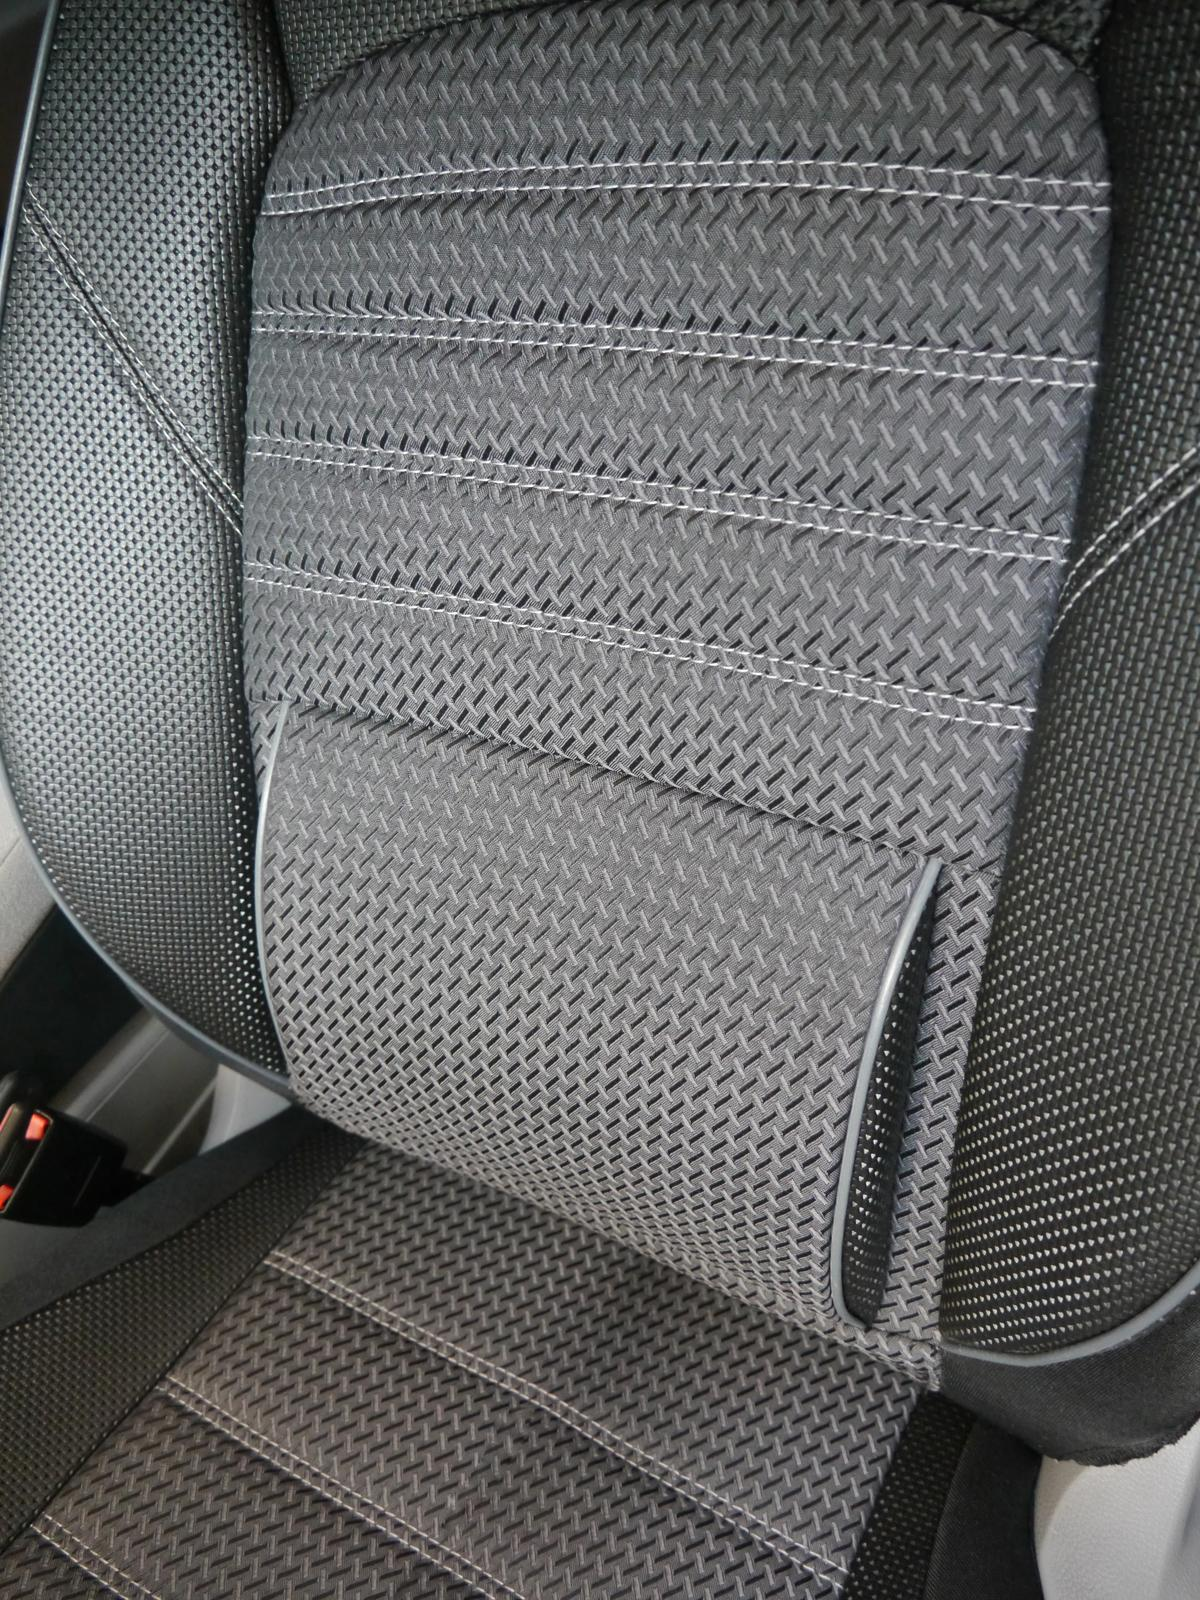 Car Seat Covers Suitable For Airbags